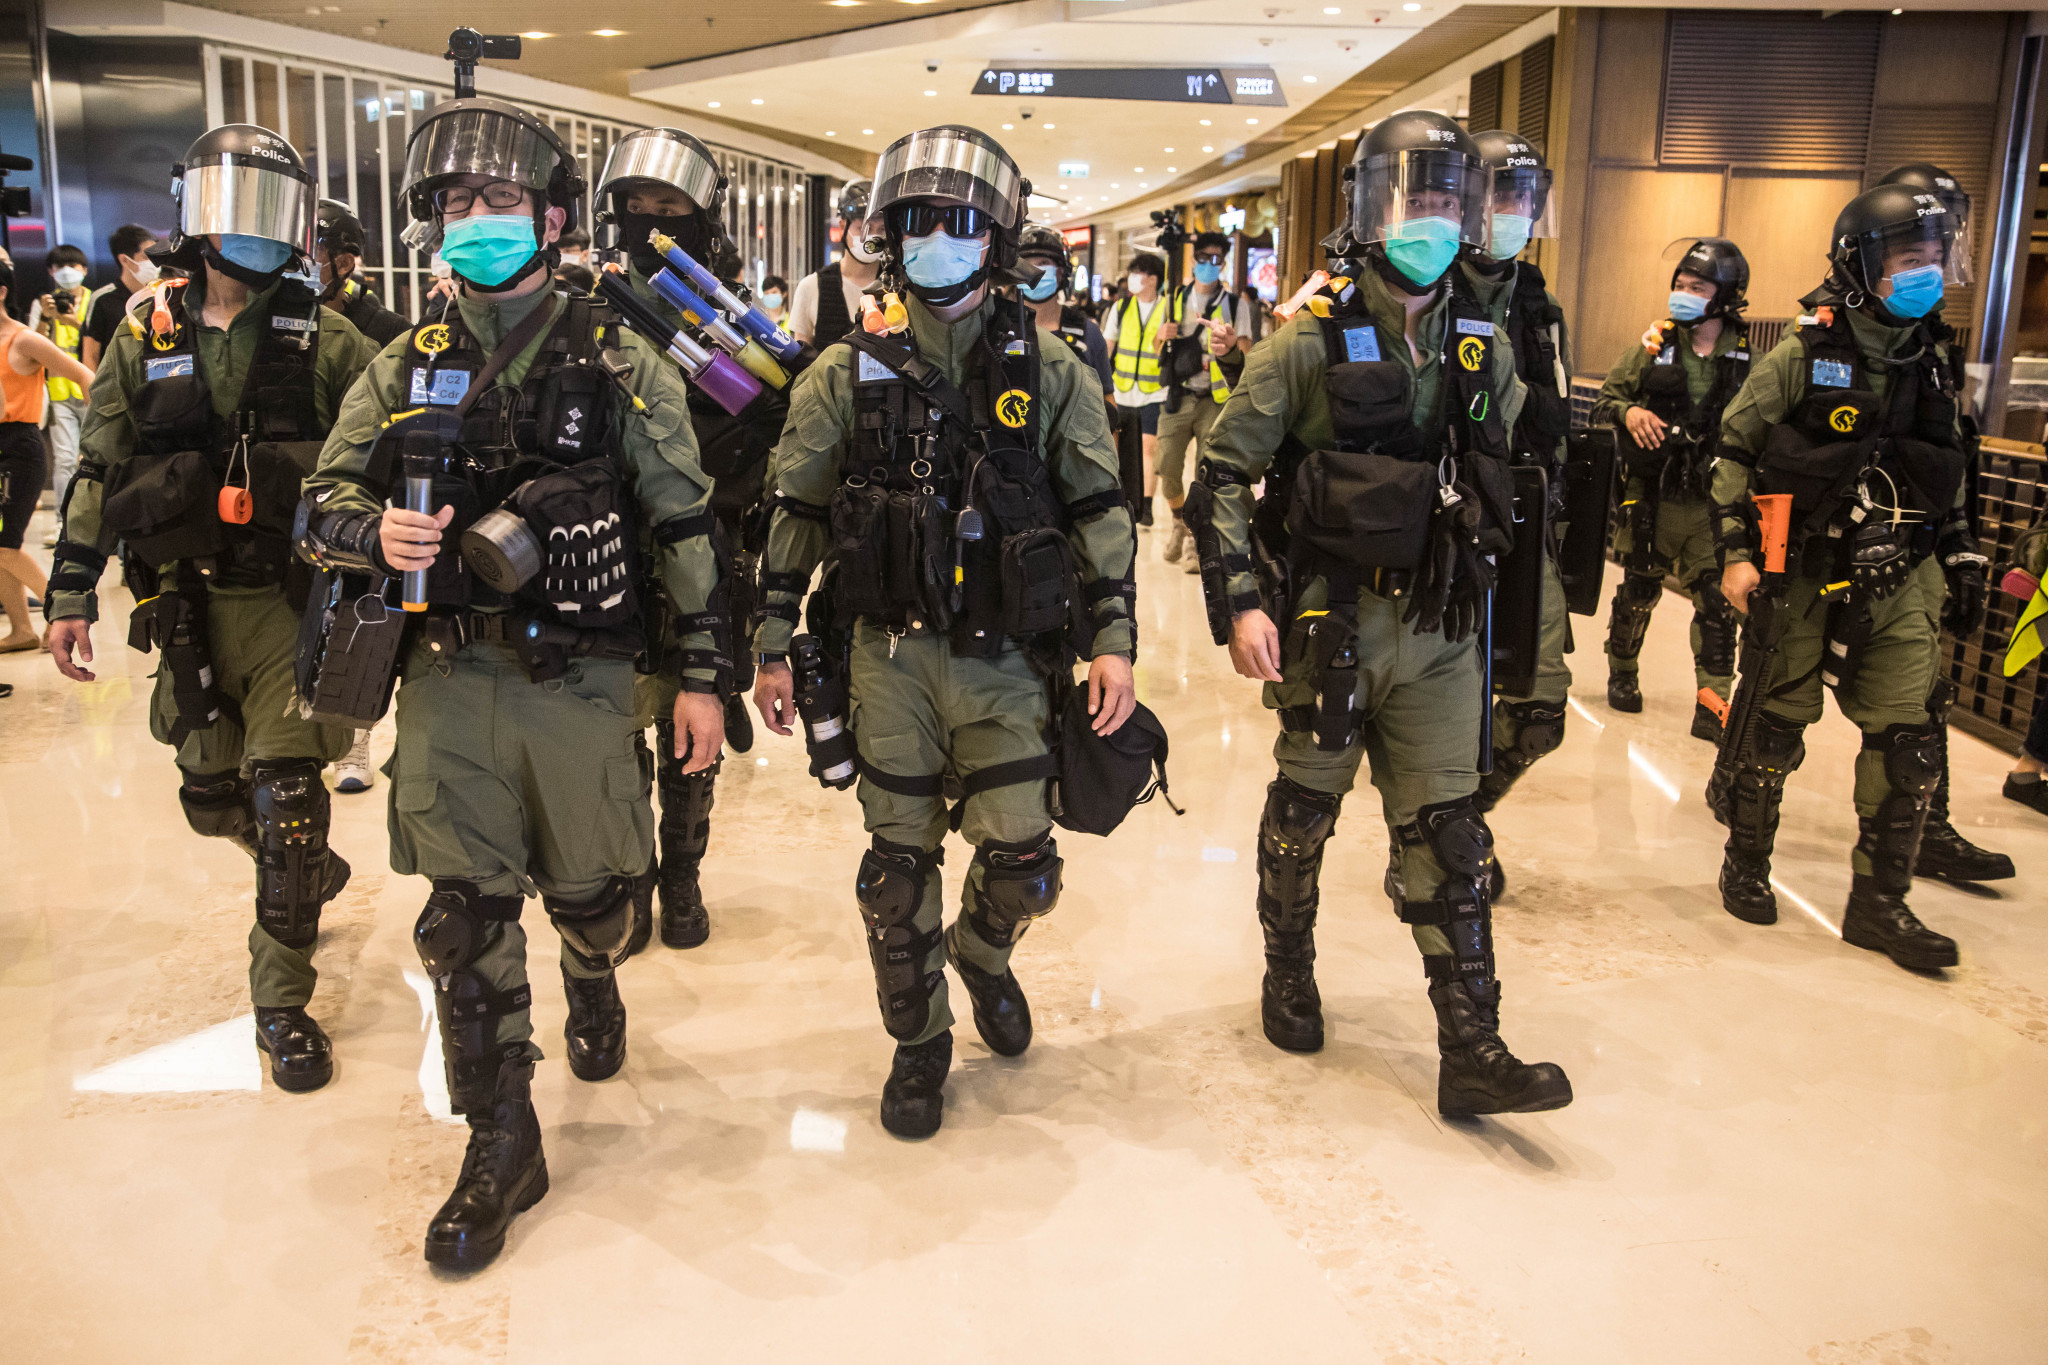 A national security law passed in Hong Kong has drawn criticism from Western nations ©Getty Images